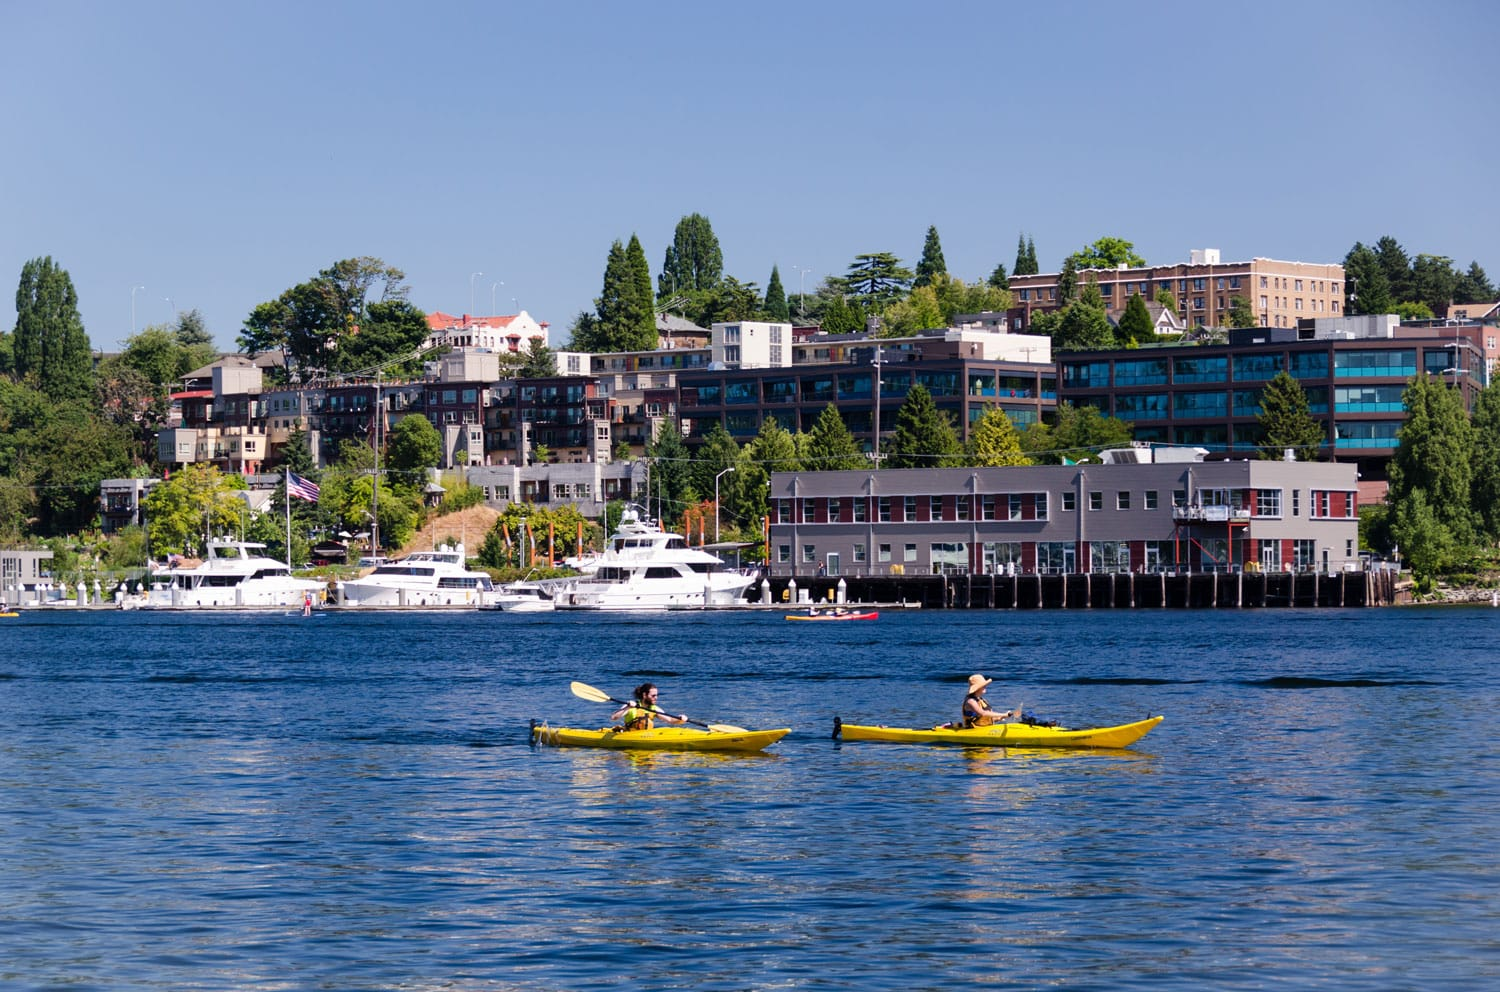 A couple of kayakers enjoying a sunny day on Lake Union in Seattle